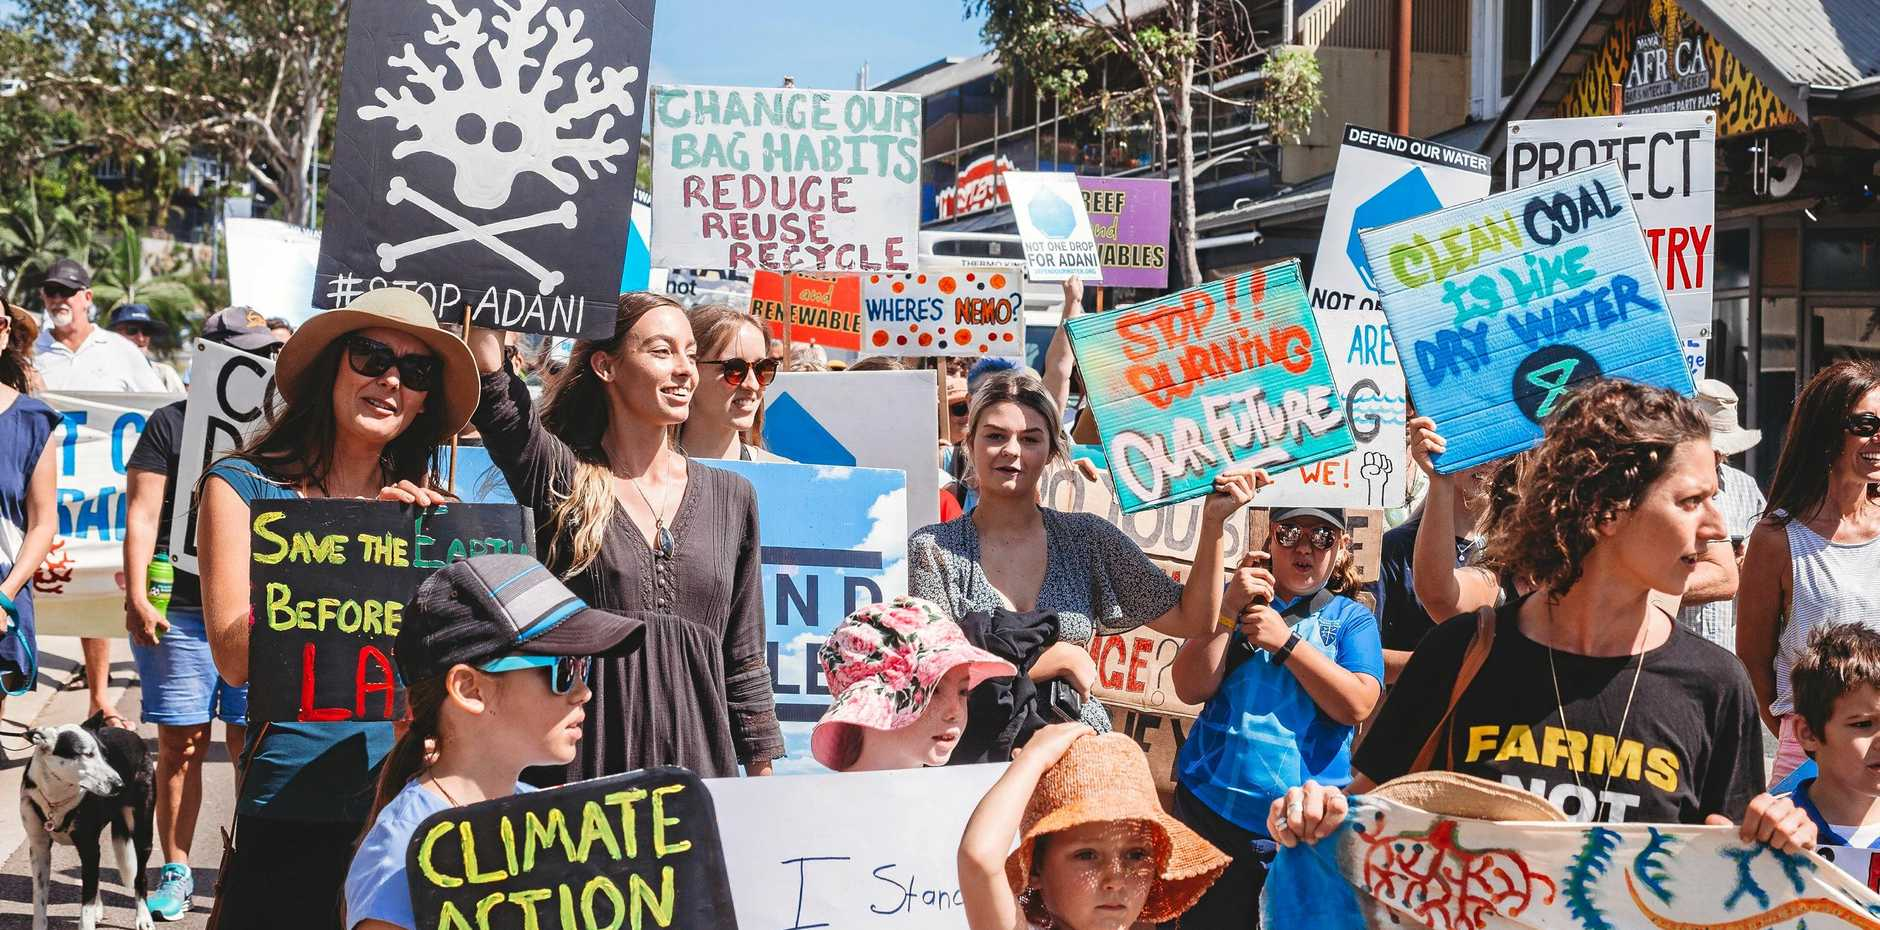 There was no shortage of colourful signs and banners at the Whitsunday Climate Strikes.